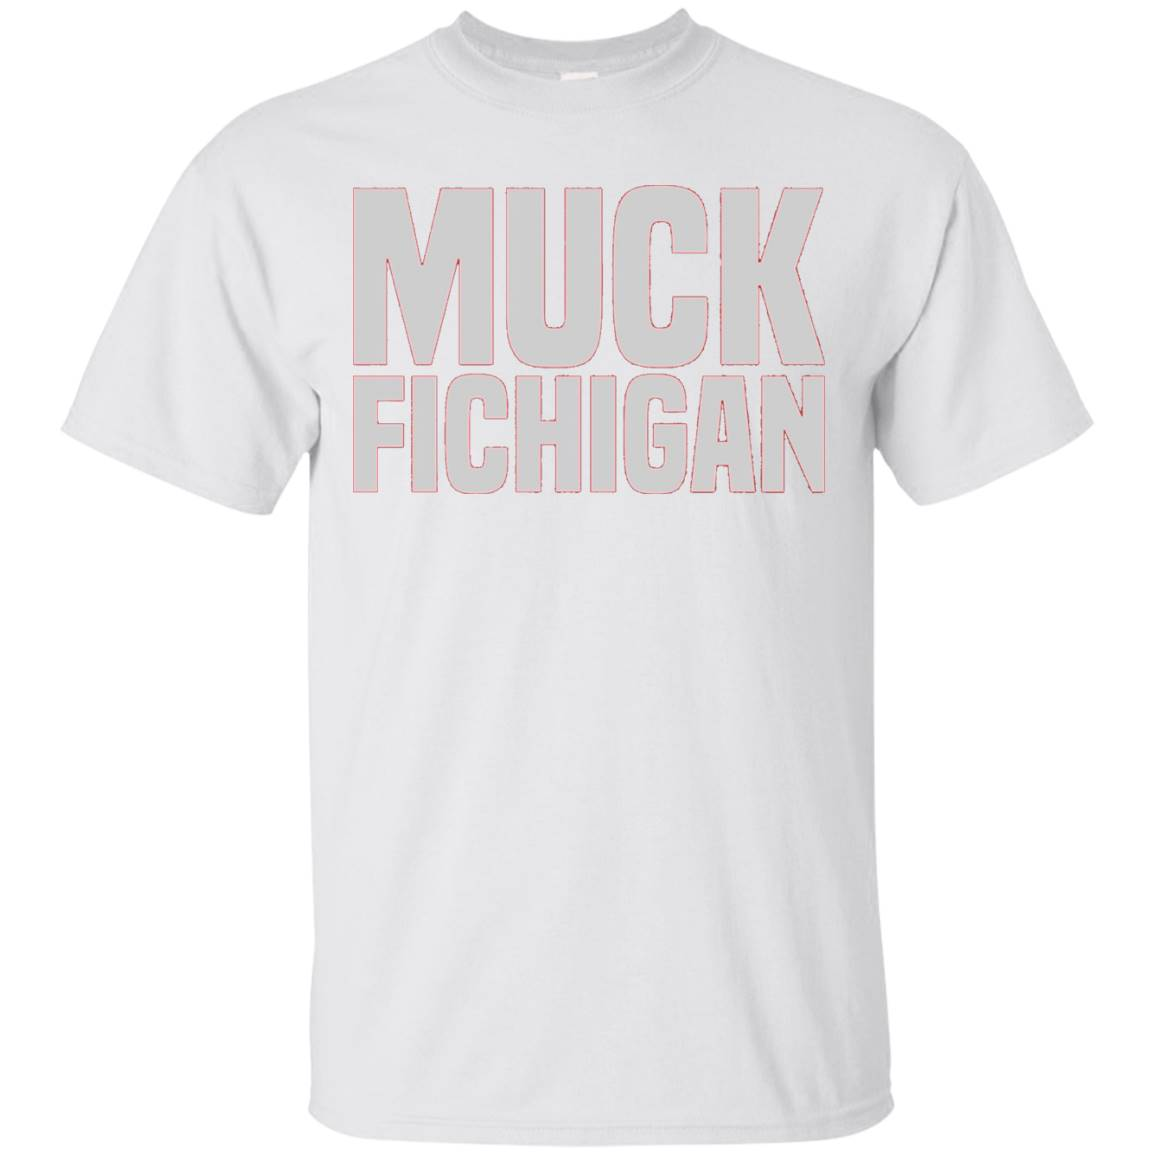 Muck Fichigan – T Shirt